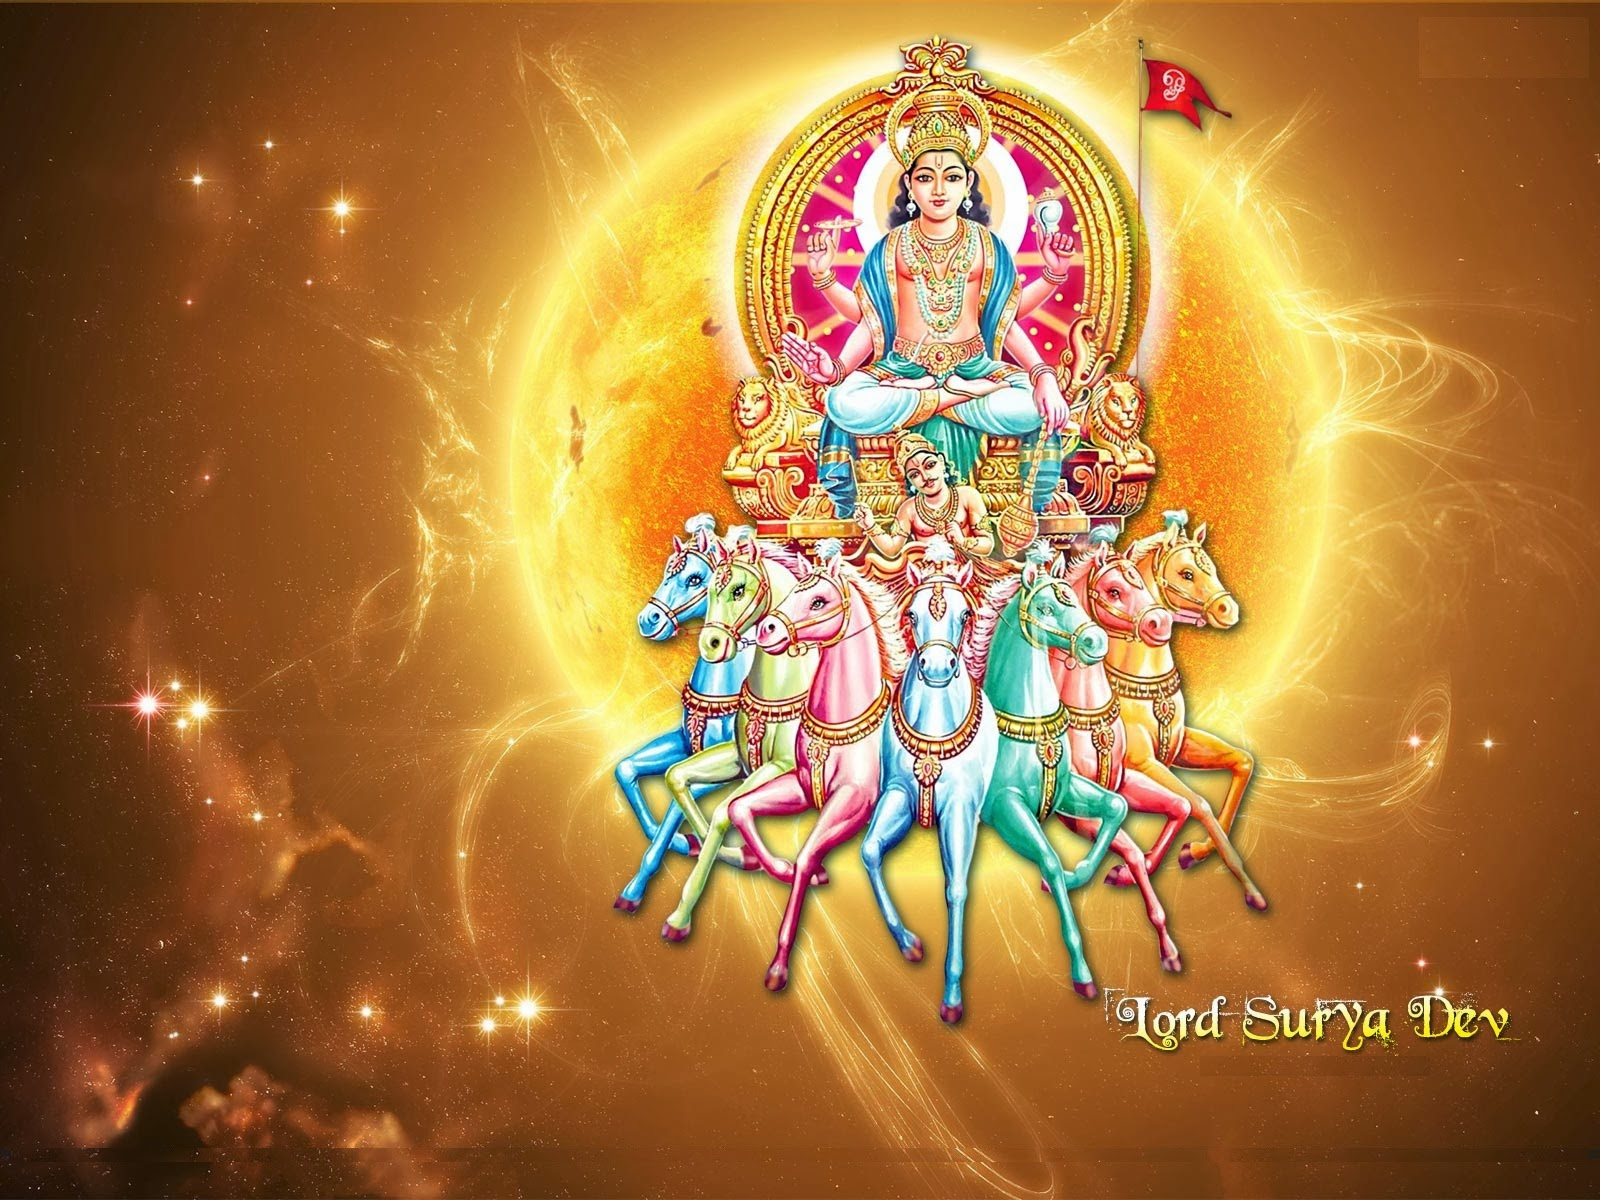 Surya Sikindar Stills In Hd Wallpapers: Lord Surya Dev HD Adbhut Images